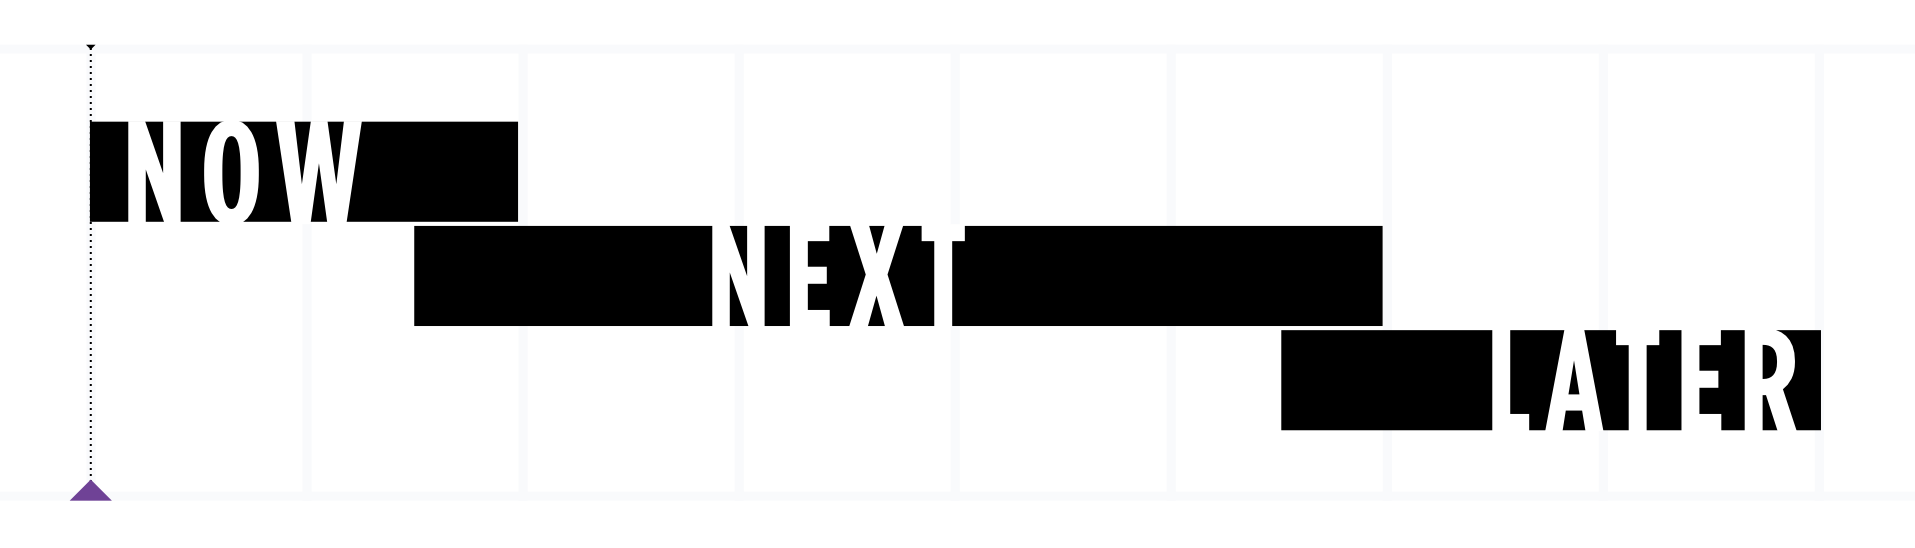 "Image of the words ""Now, Next, Later"" on a timeline"